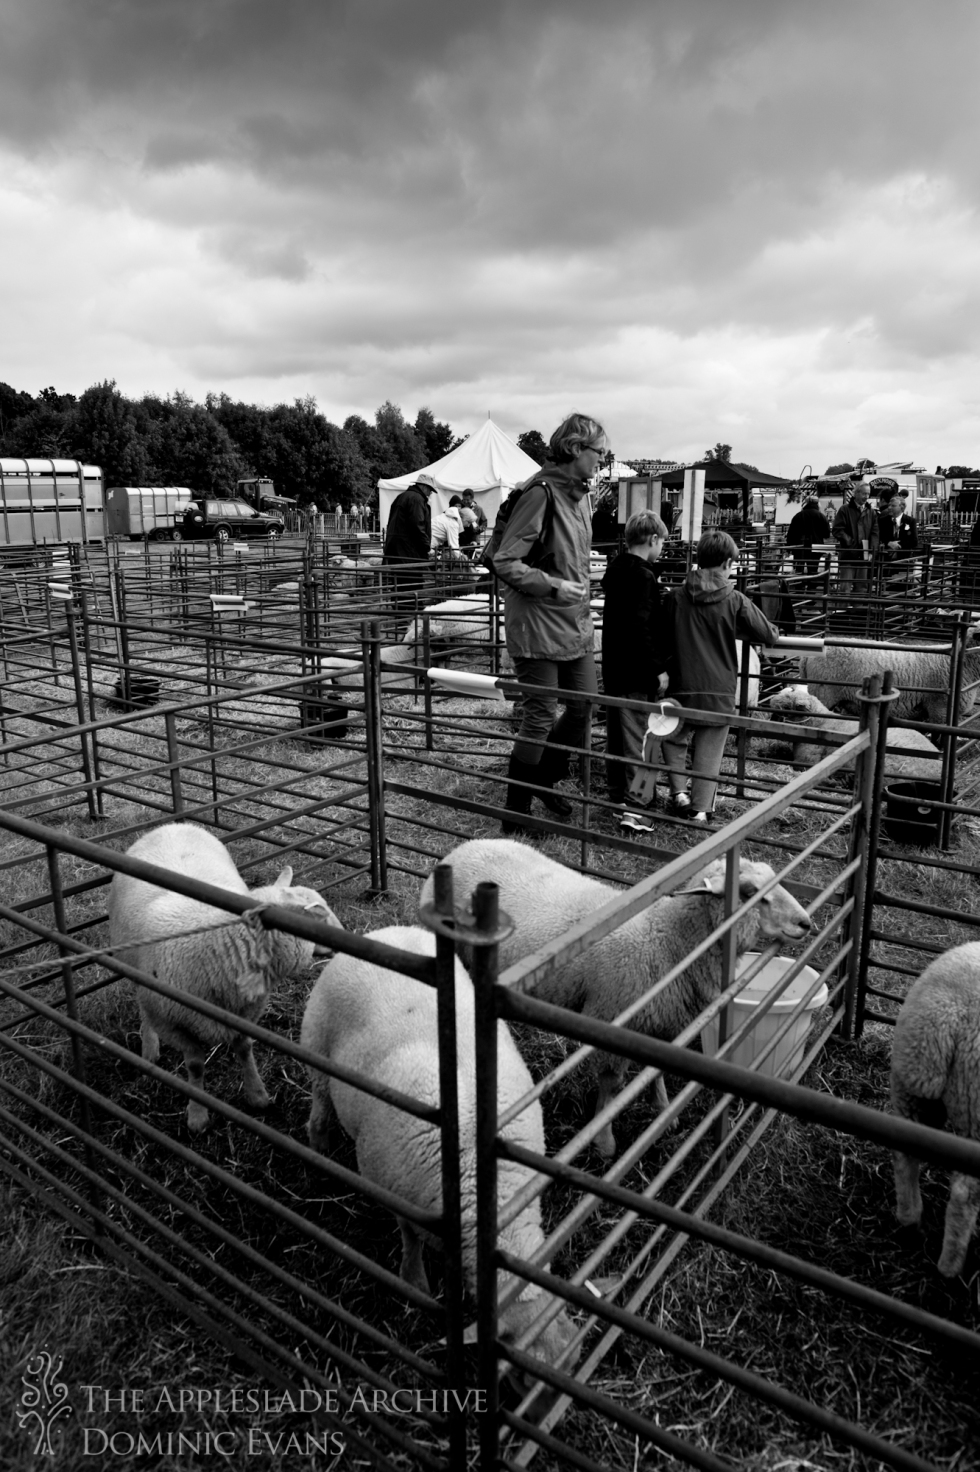 Sheep at Romsey Show, Romsey, Hampshire, 14th Sept 2013